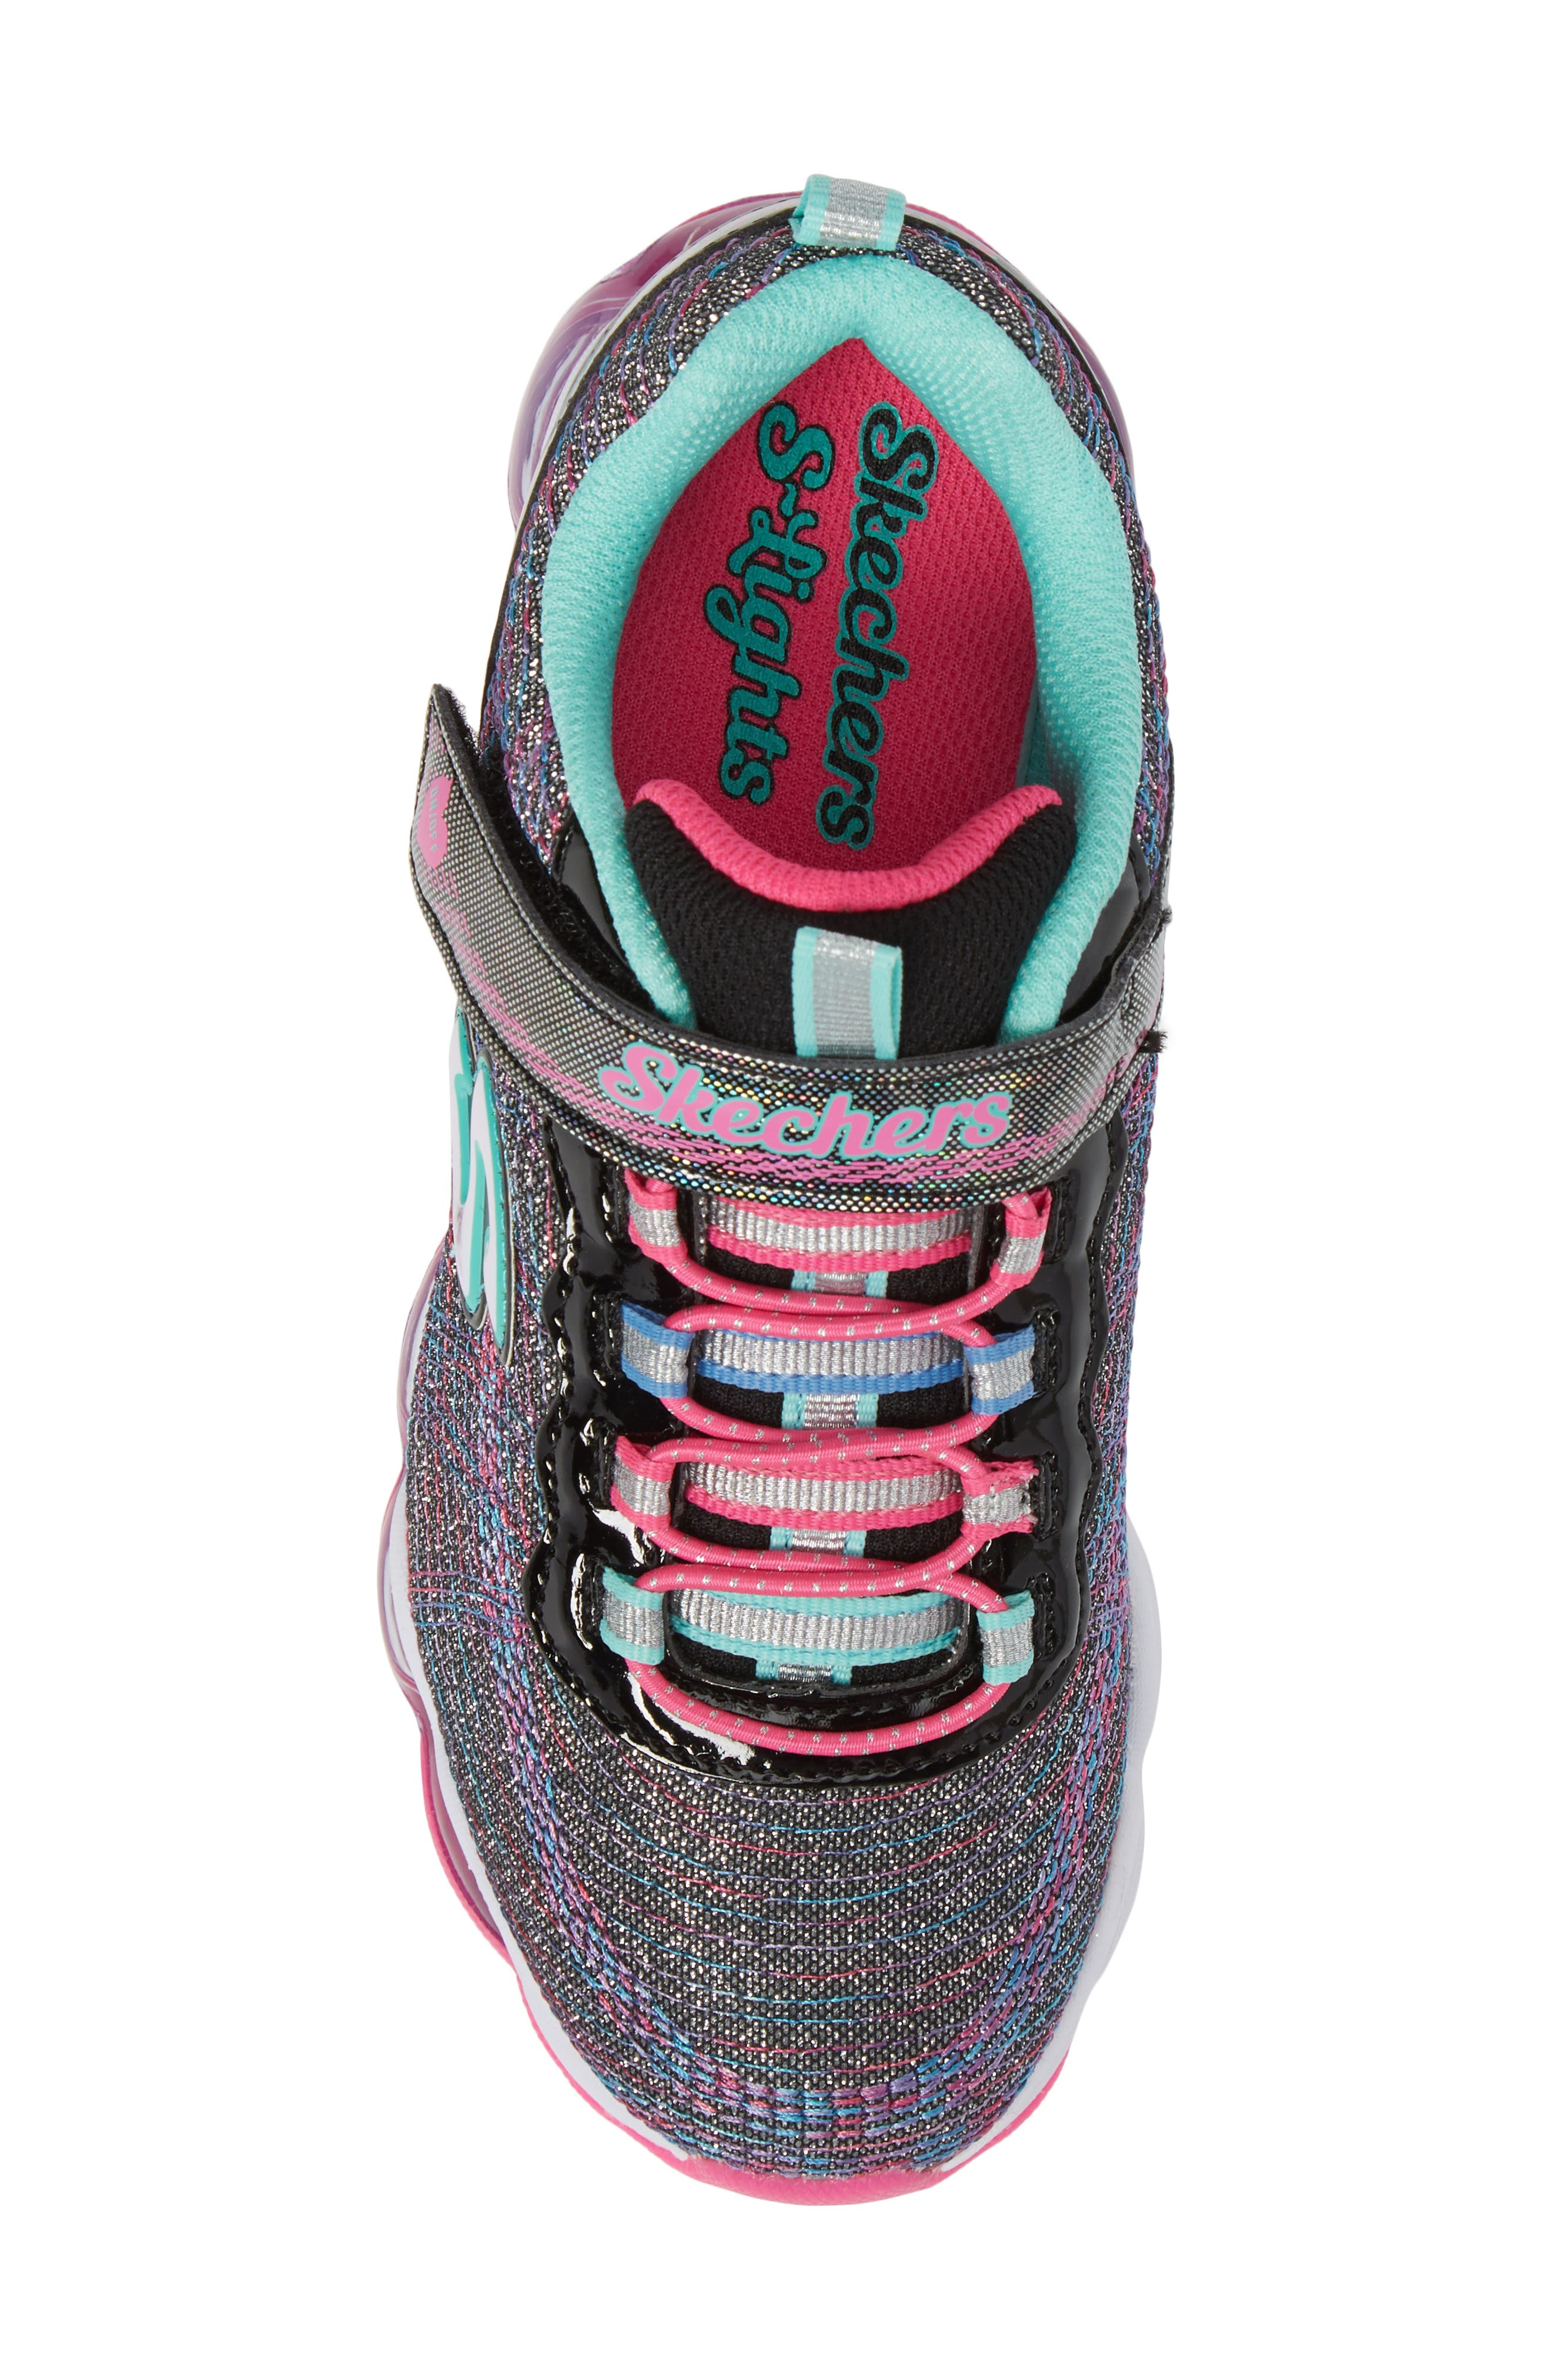 Glimmer Lights Sneakers,                             Alternate thumbnail 5, color,                             001